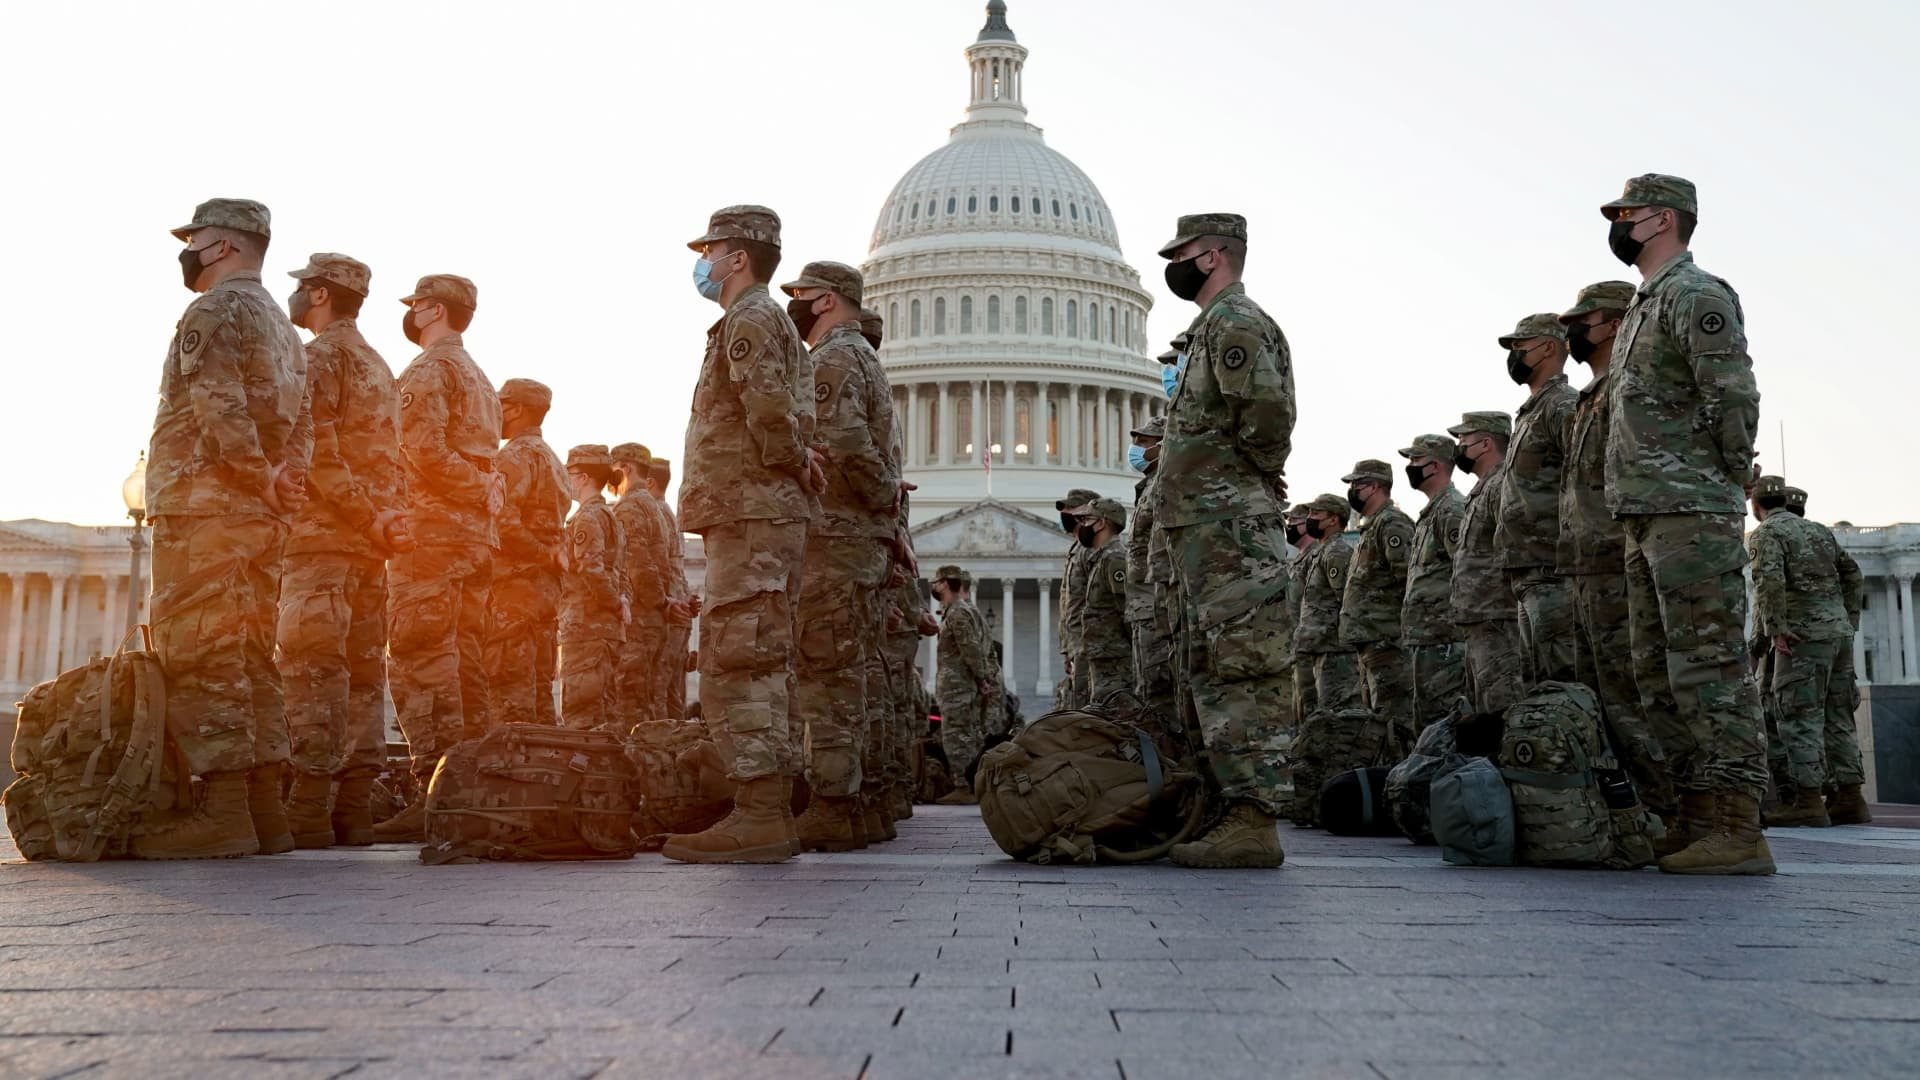 Members of the National Guard gather at the U.S. Capitol as the House of Representatives prepares to begin the voting process on a resolution demanding U.S. Vice President Pence and the cabinet remove President Trump from office, in Washington, January 12, 2021.